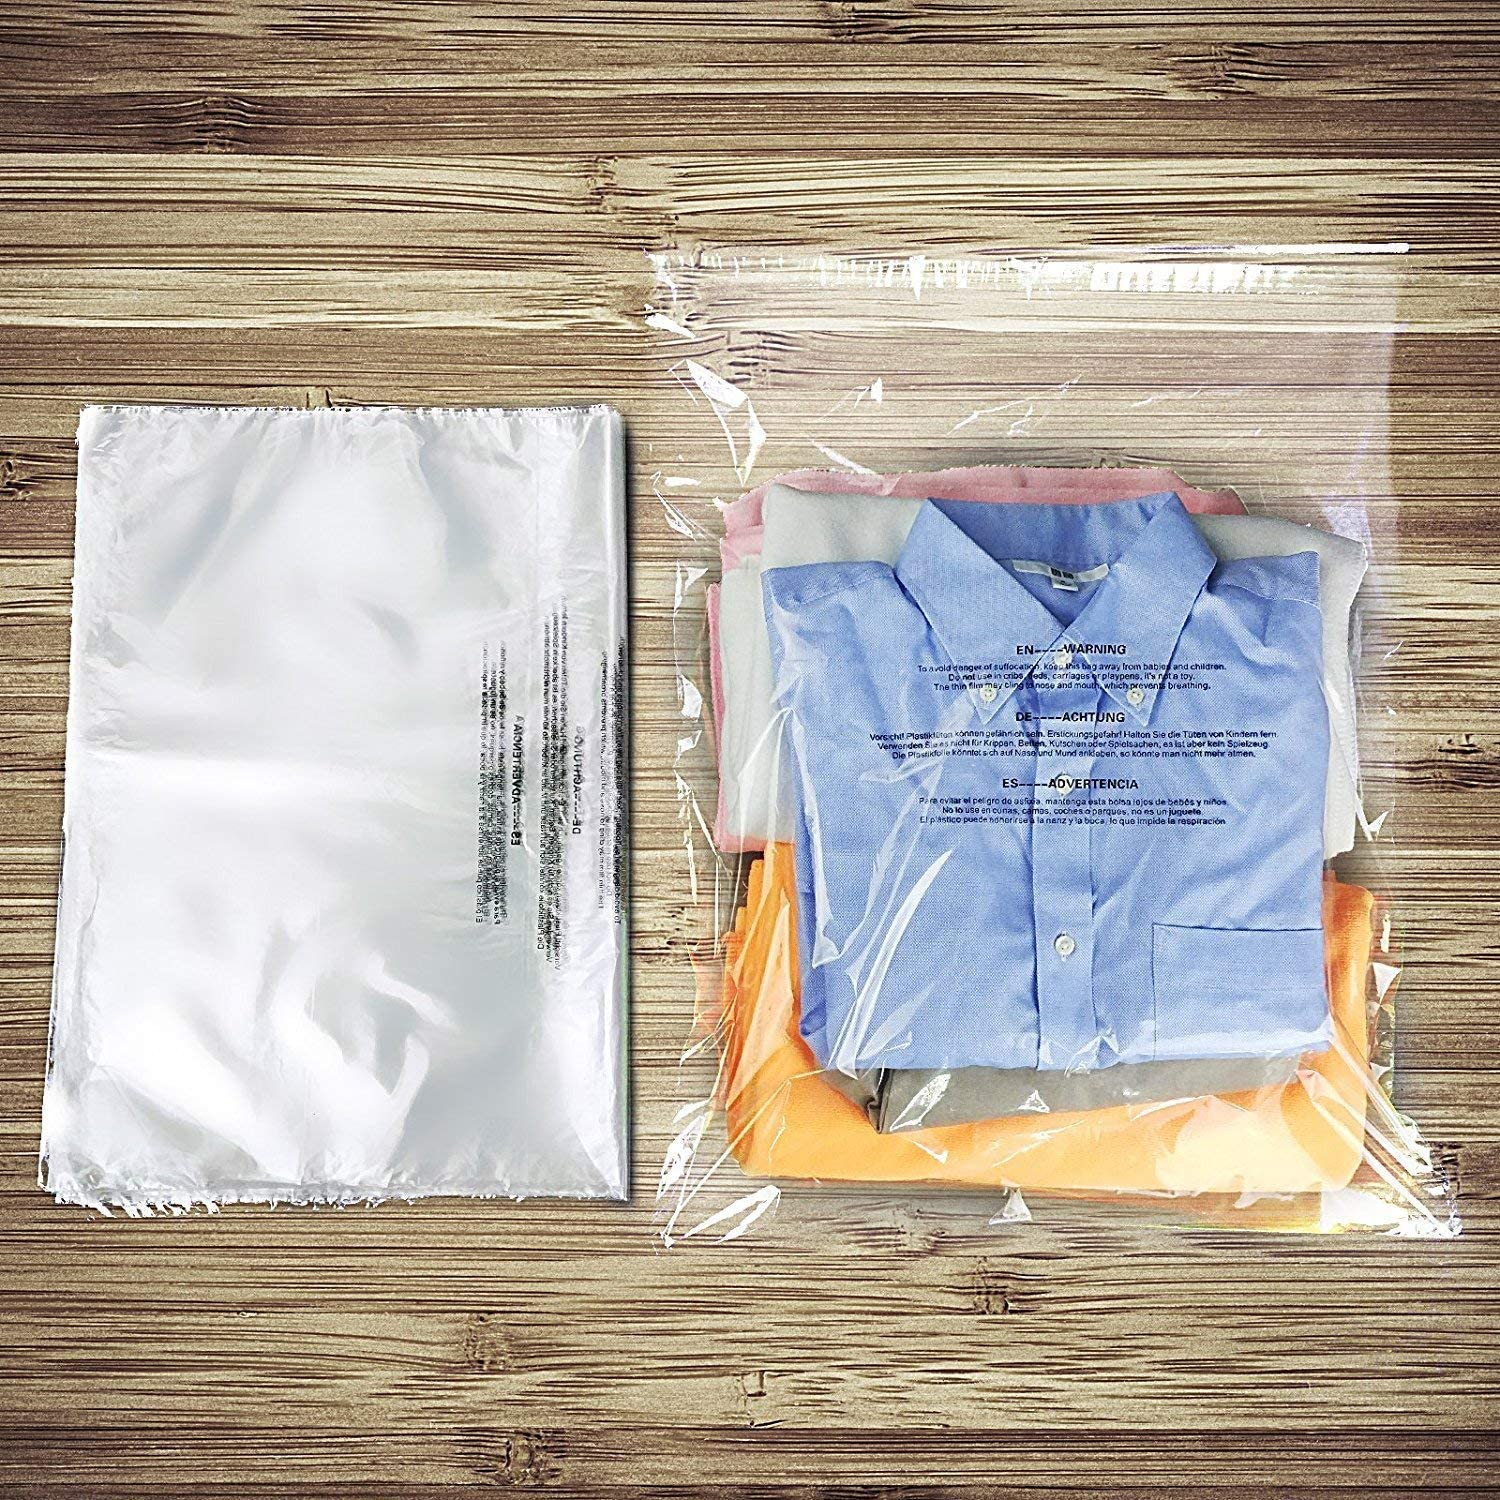 """100pcs Becko Self Seal Clear Flat Poly Bags with Suffocation Warning for Storing Clothing//Towel//Blanket//Doll 18/""""x24/"""""""